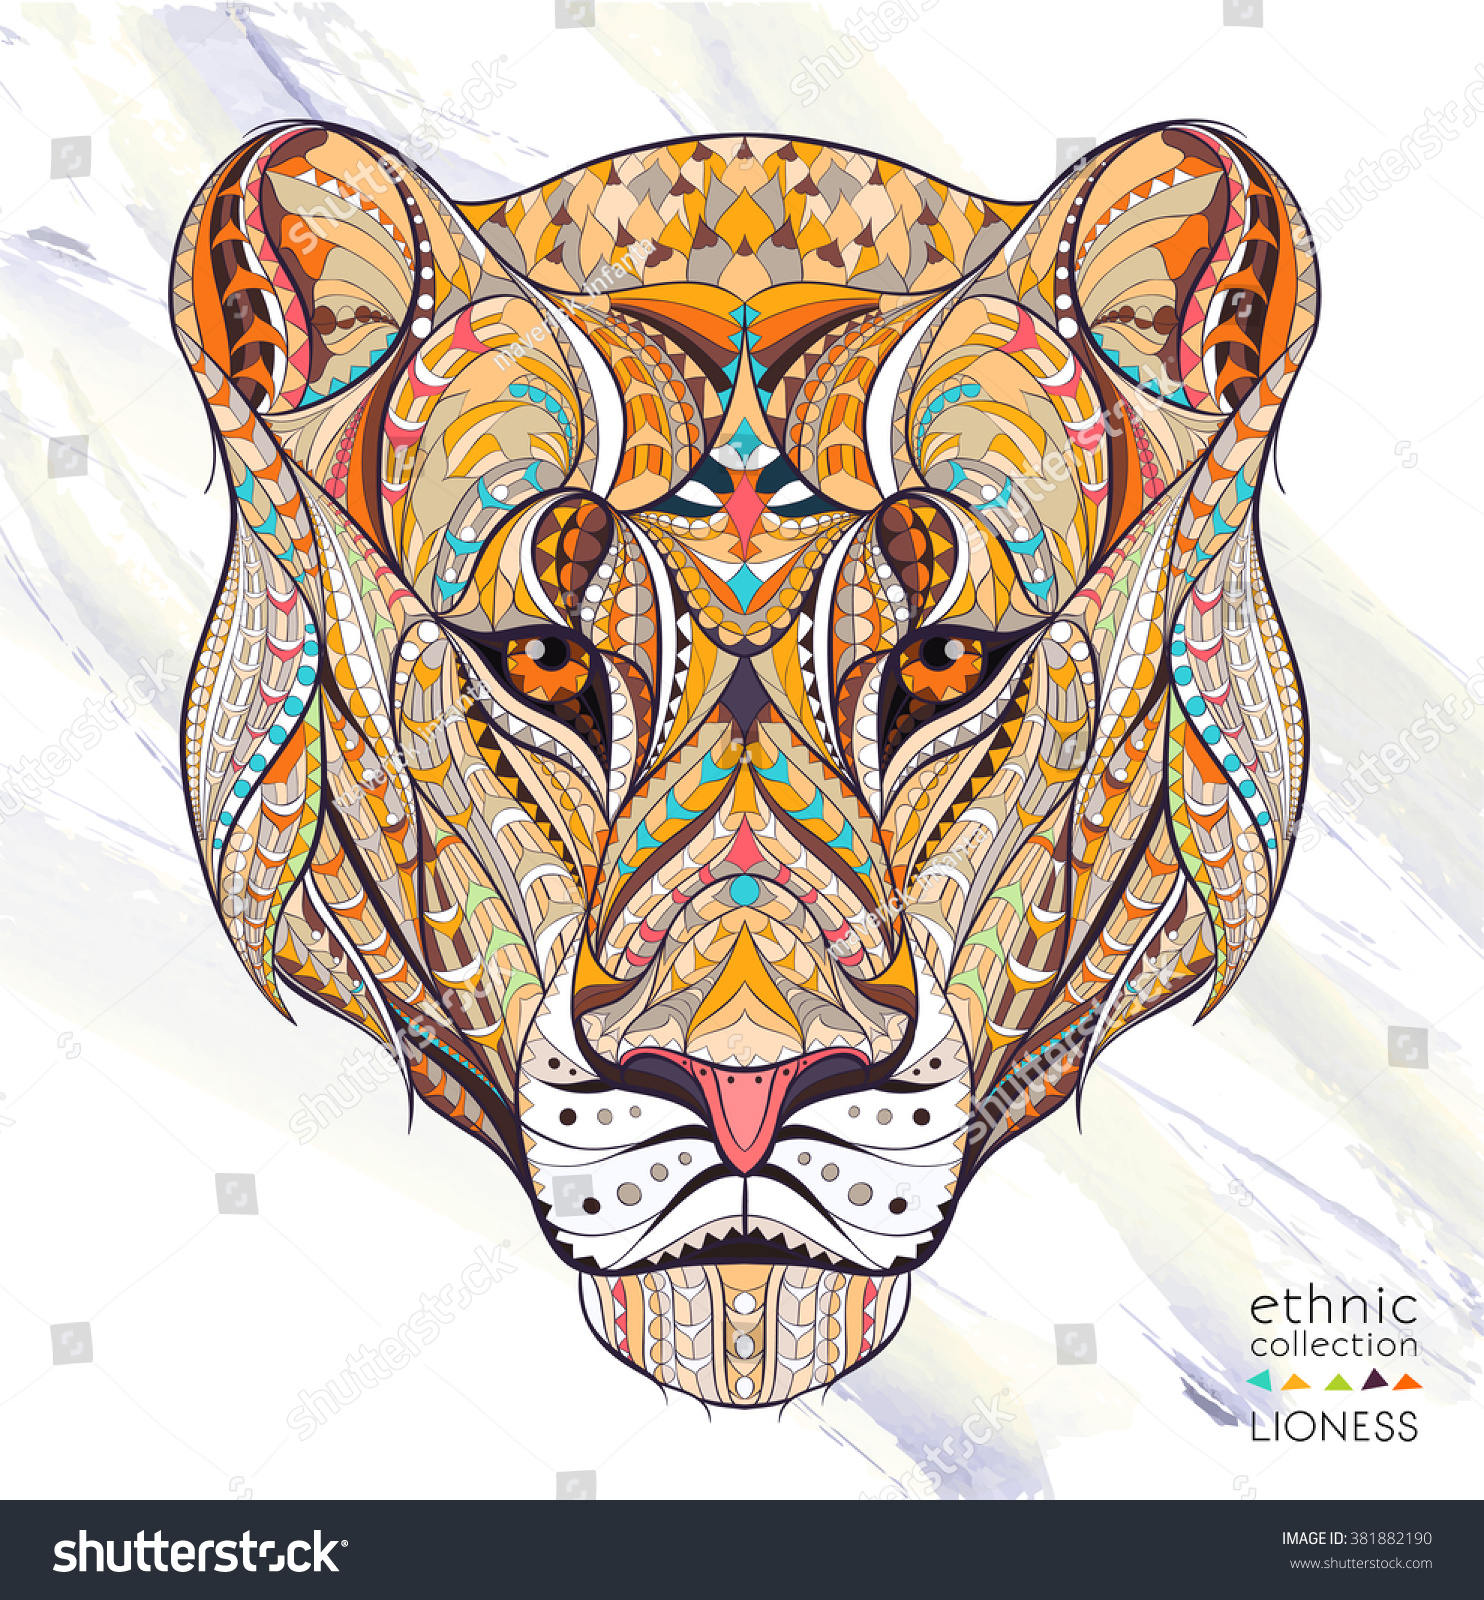 Patterned head of the lioness on the grunge background African indian totem tattoo design It may be used for design of a t-shirt bag postcard a poster and so on